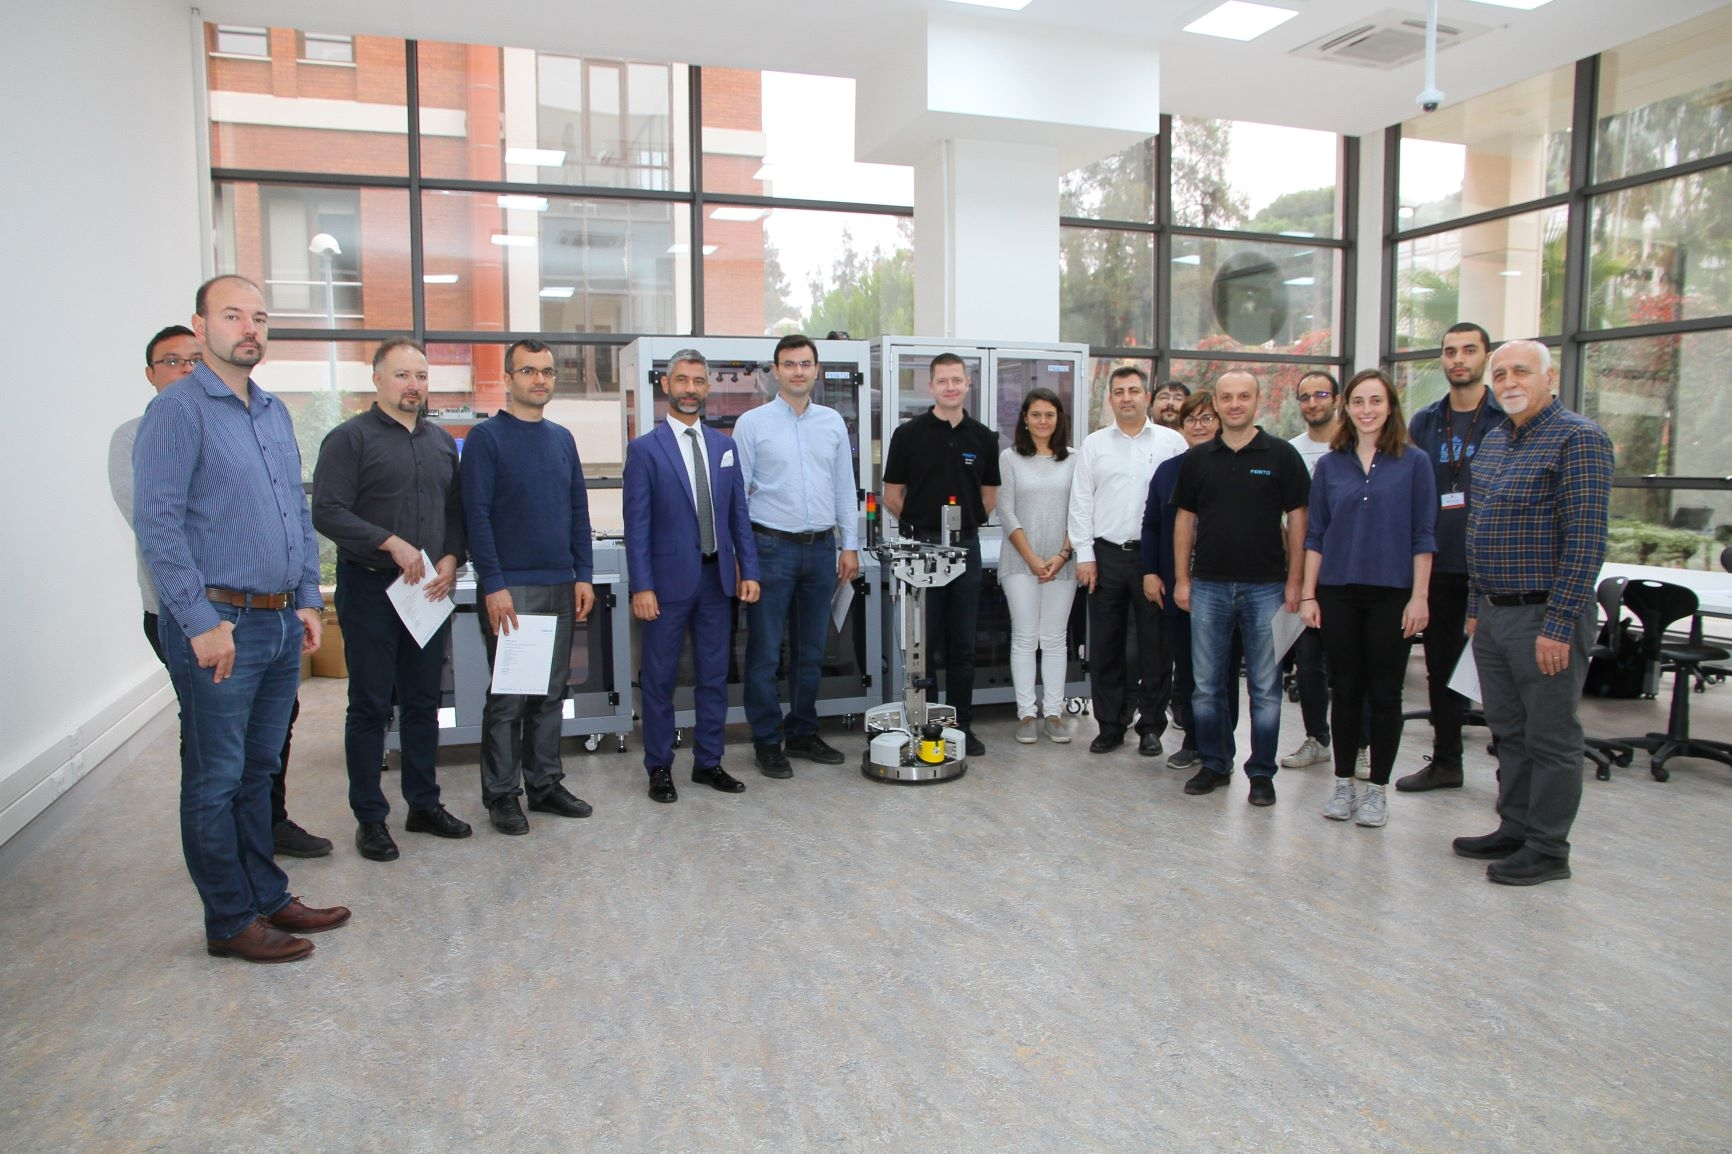 Industry 4.0 training was held between November 6-8 .